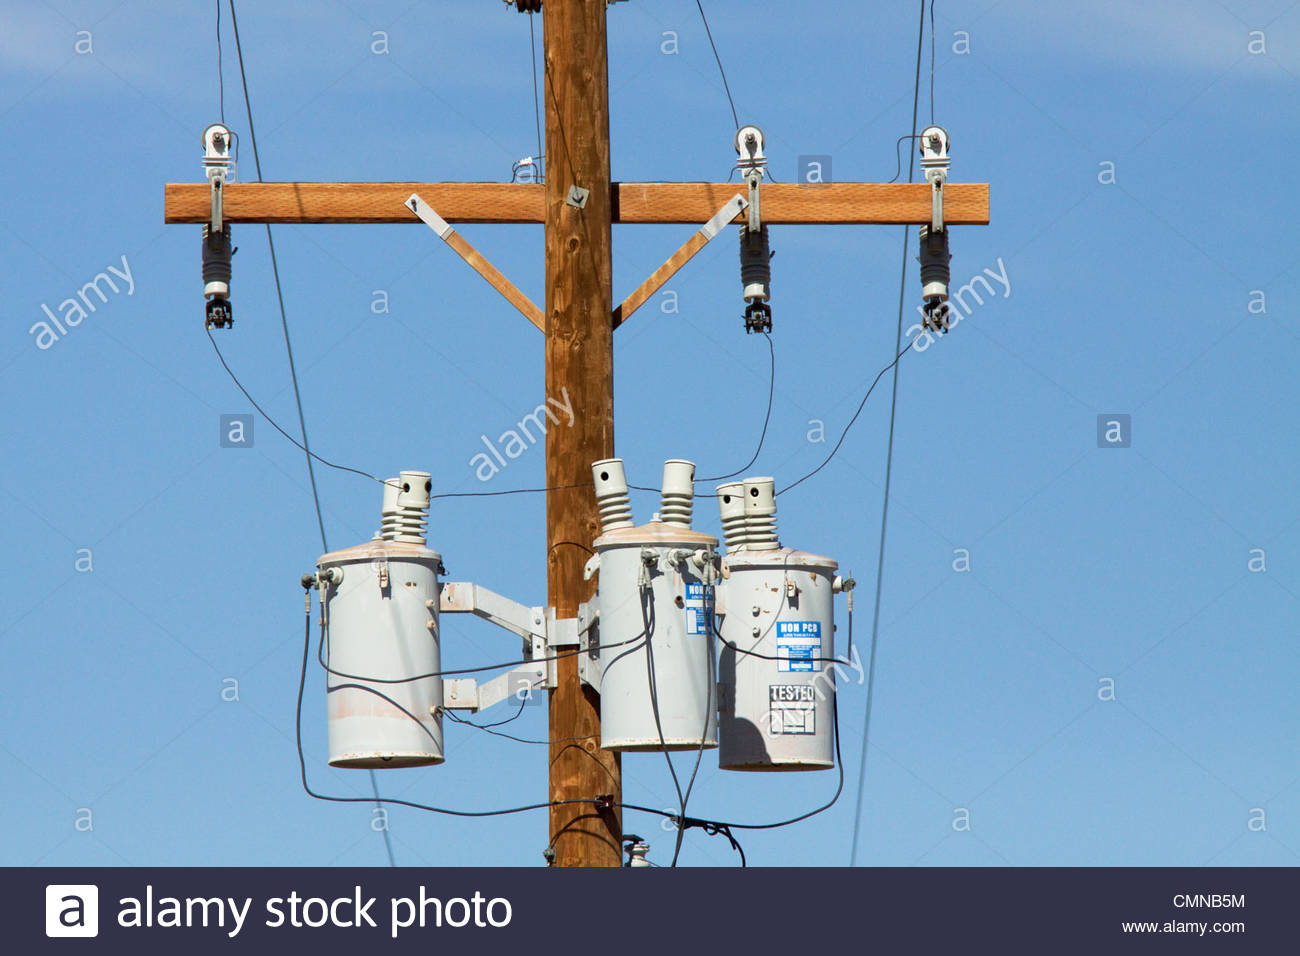 Three Phase Electric Power Stock Photos & Three Phase Electric Power ...